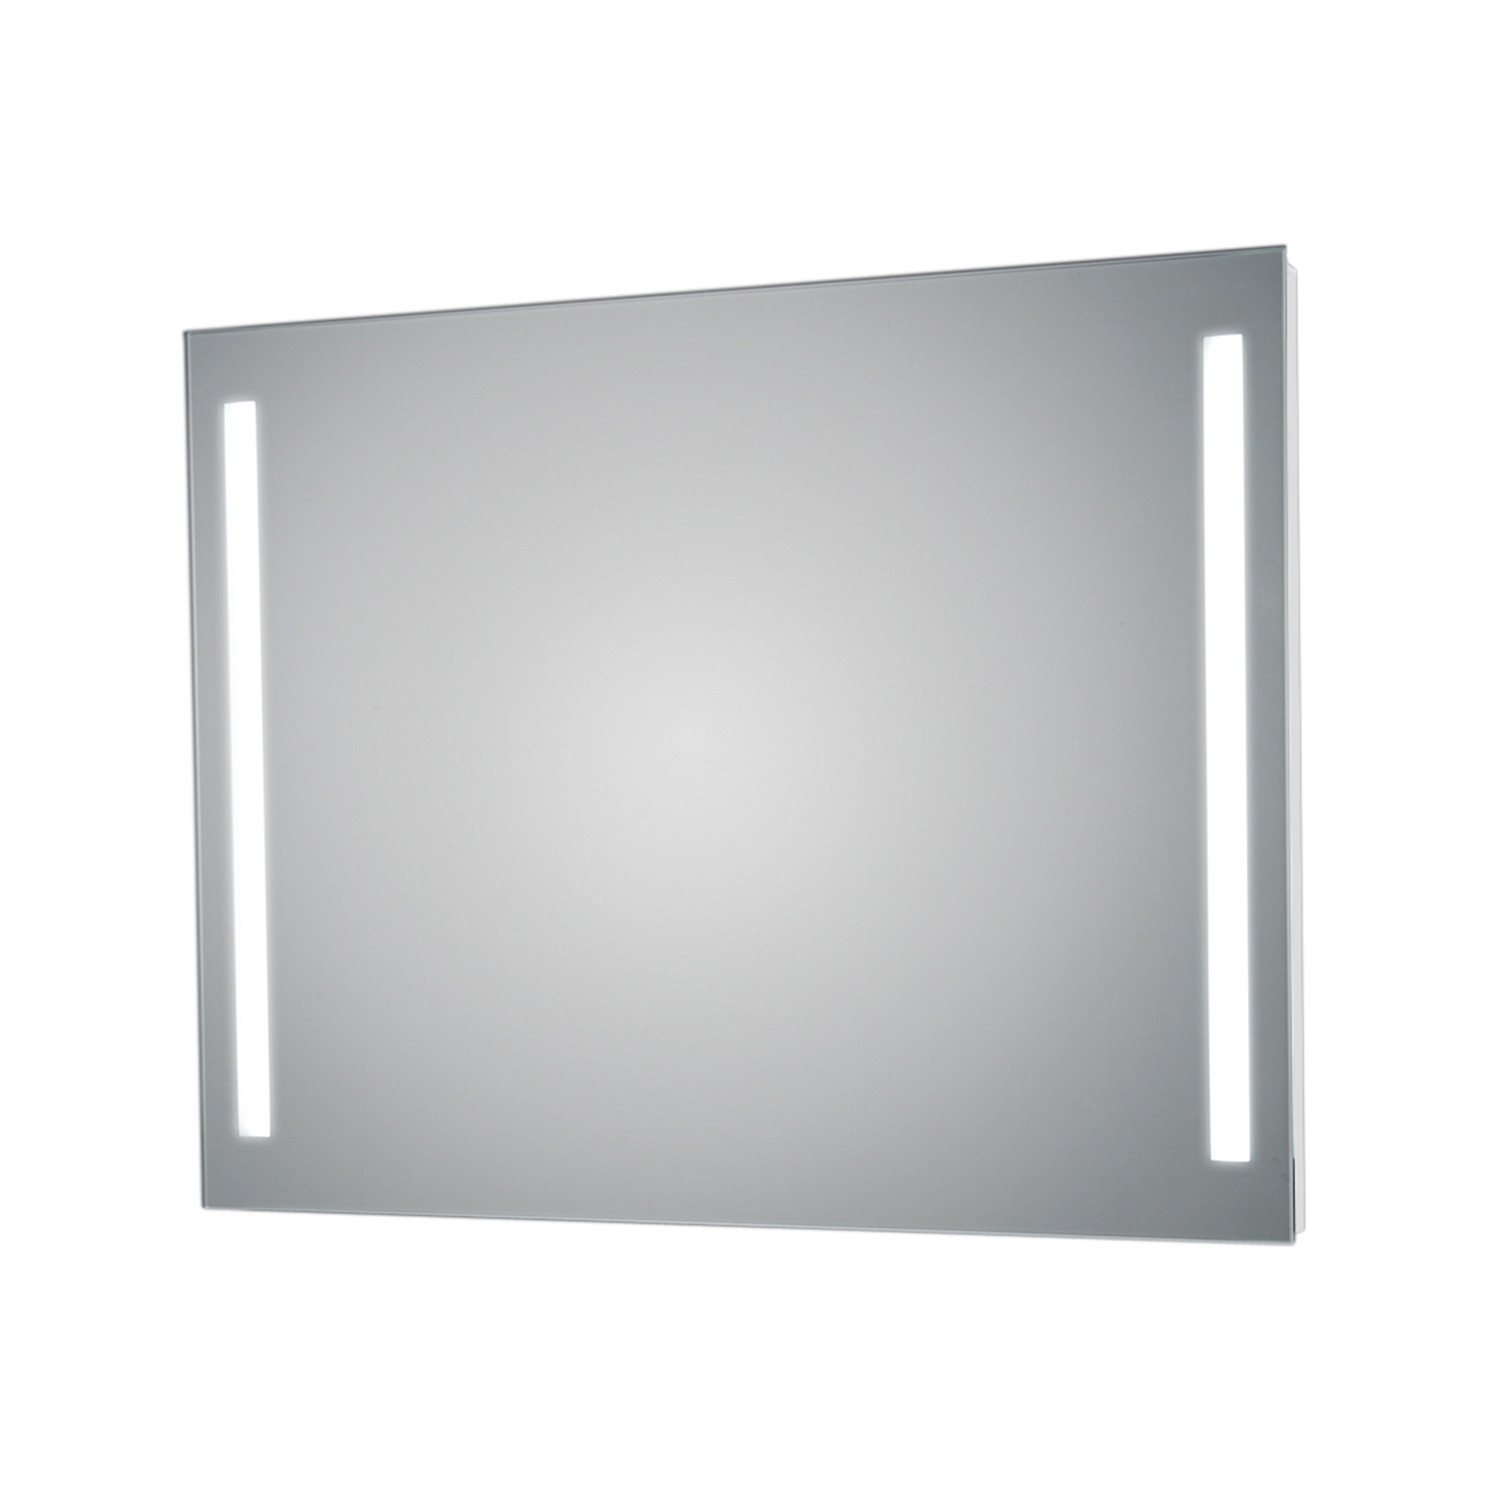 Lighted Bathroom Wall Mirror Large: Side LED Lighted Bathroom Wall Mirror